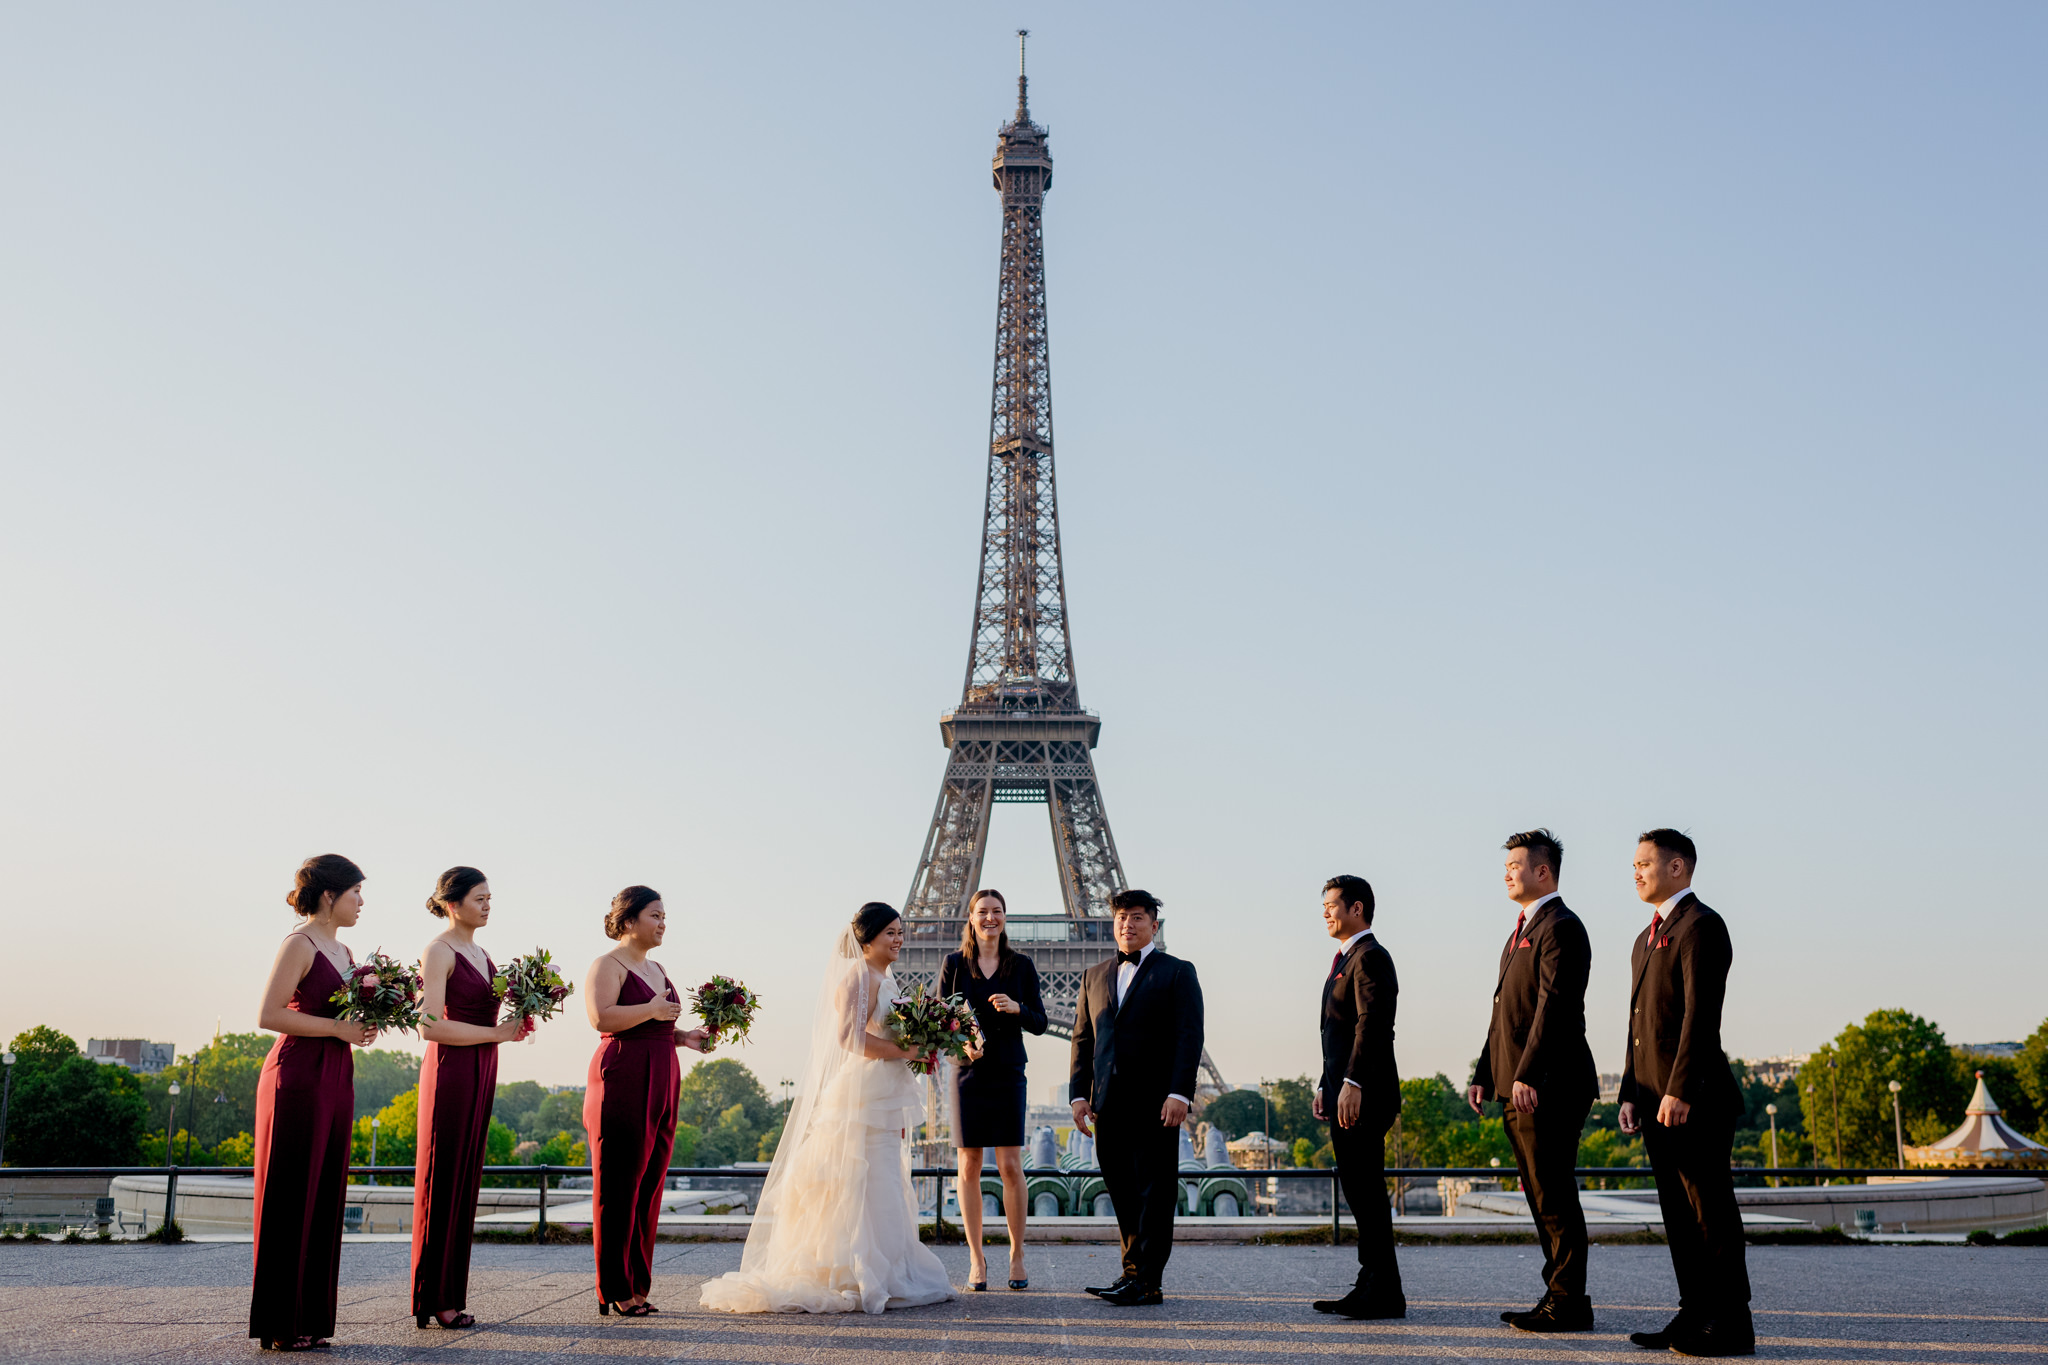 A bridal party lines up for a wedding in front of the Eiffel Tower.